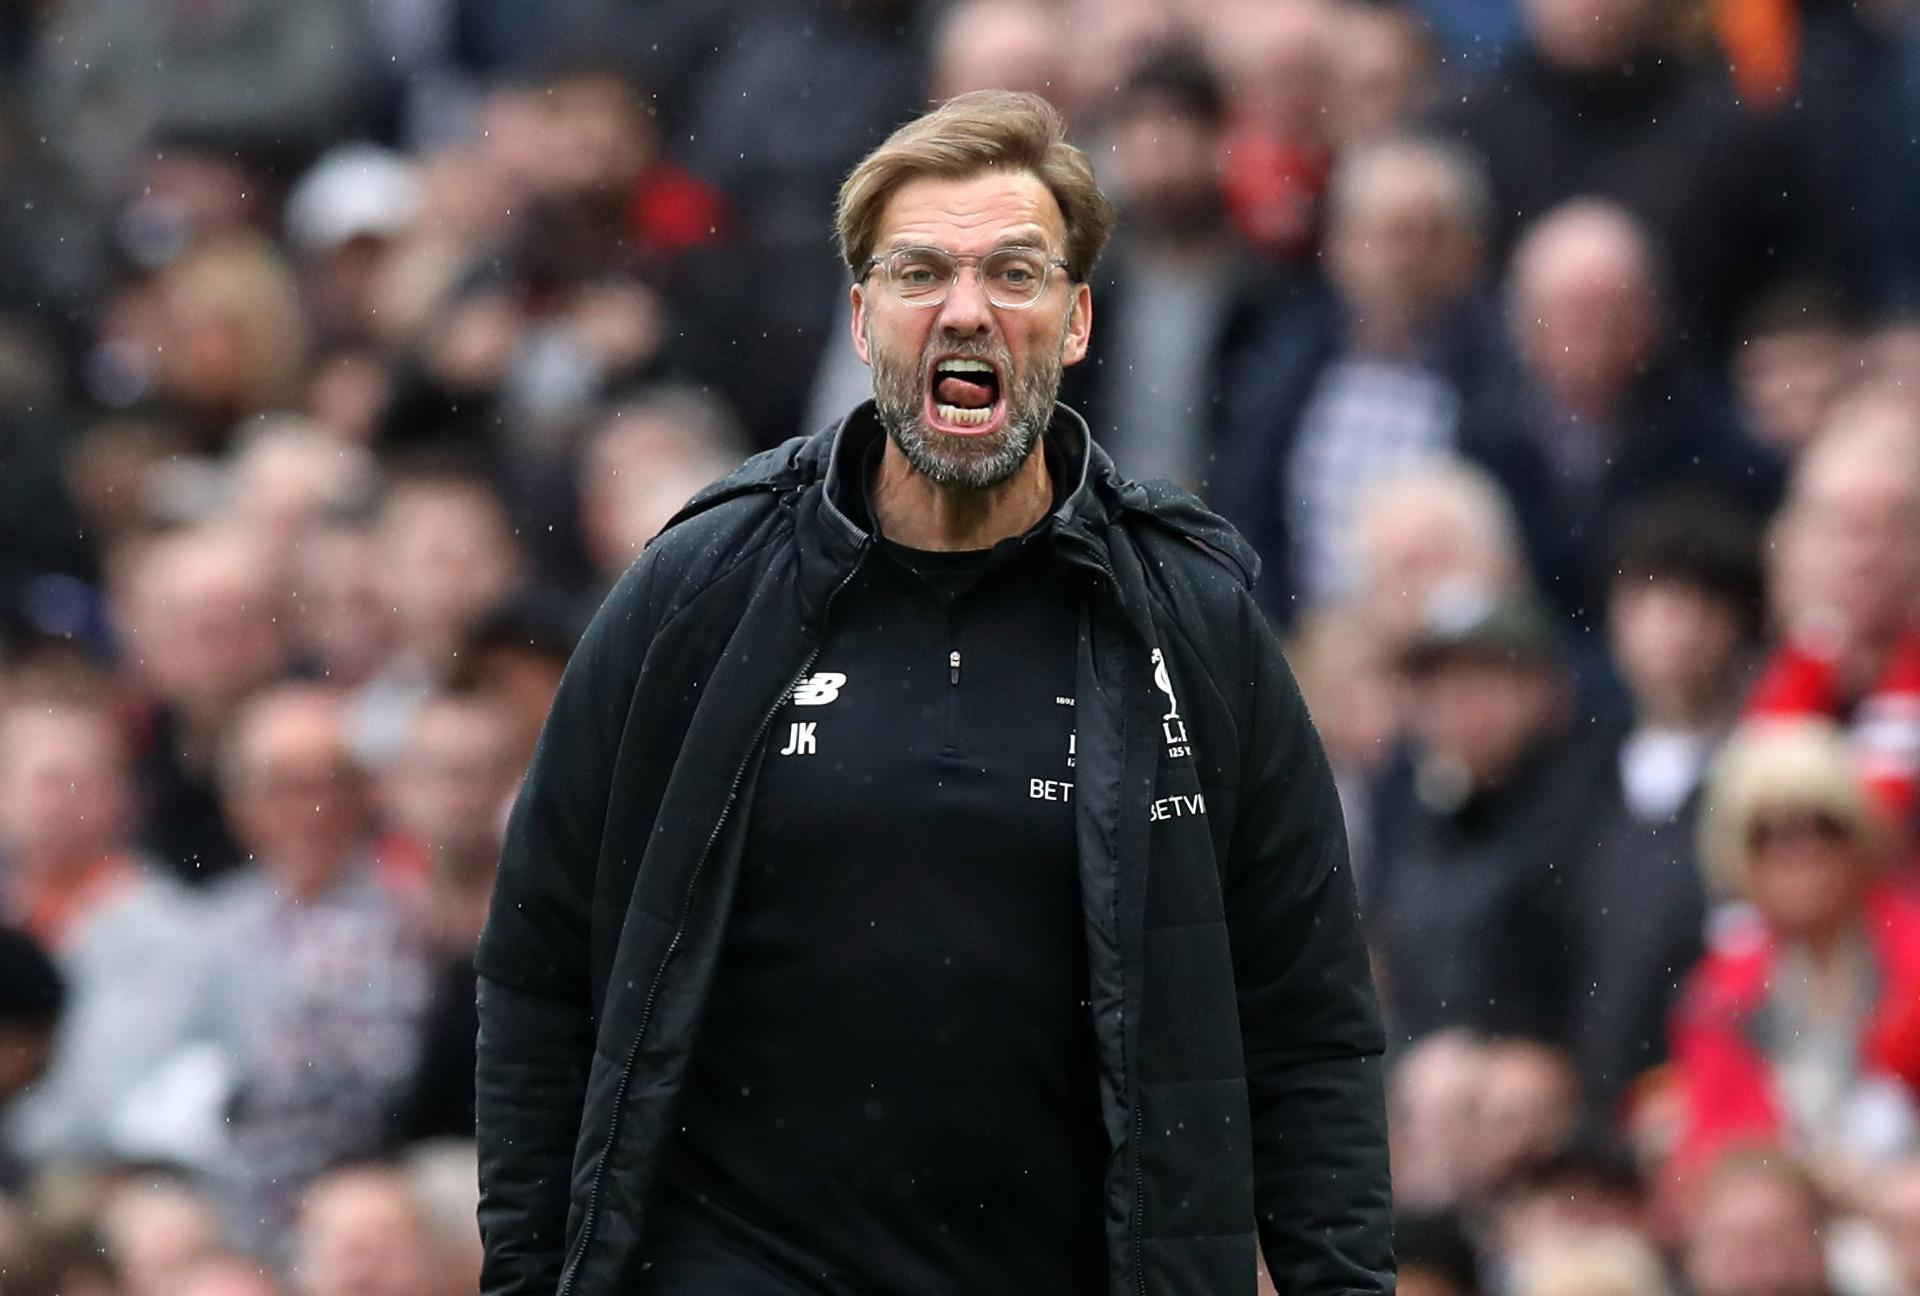 Very few players have the cajones to reject Klopp